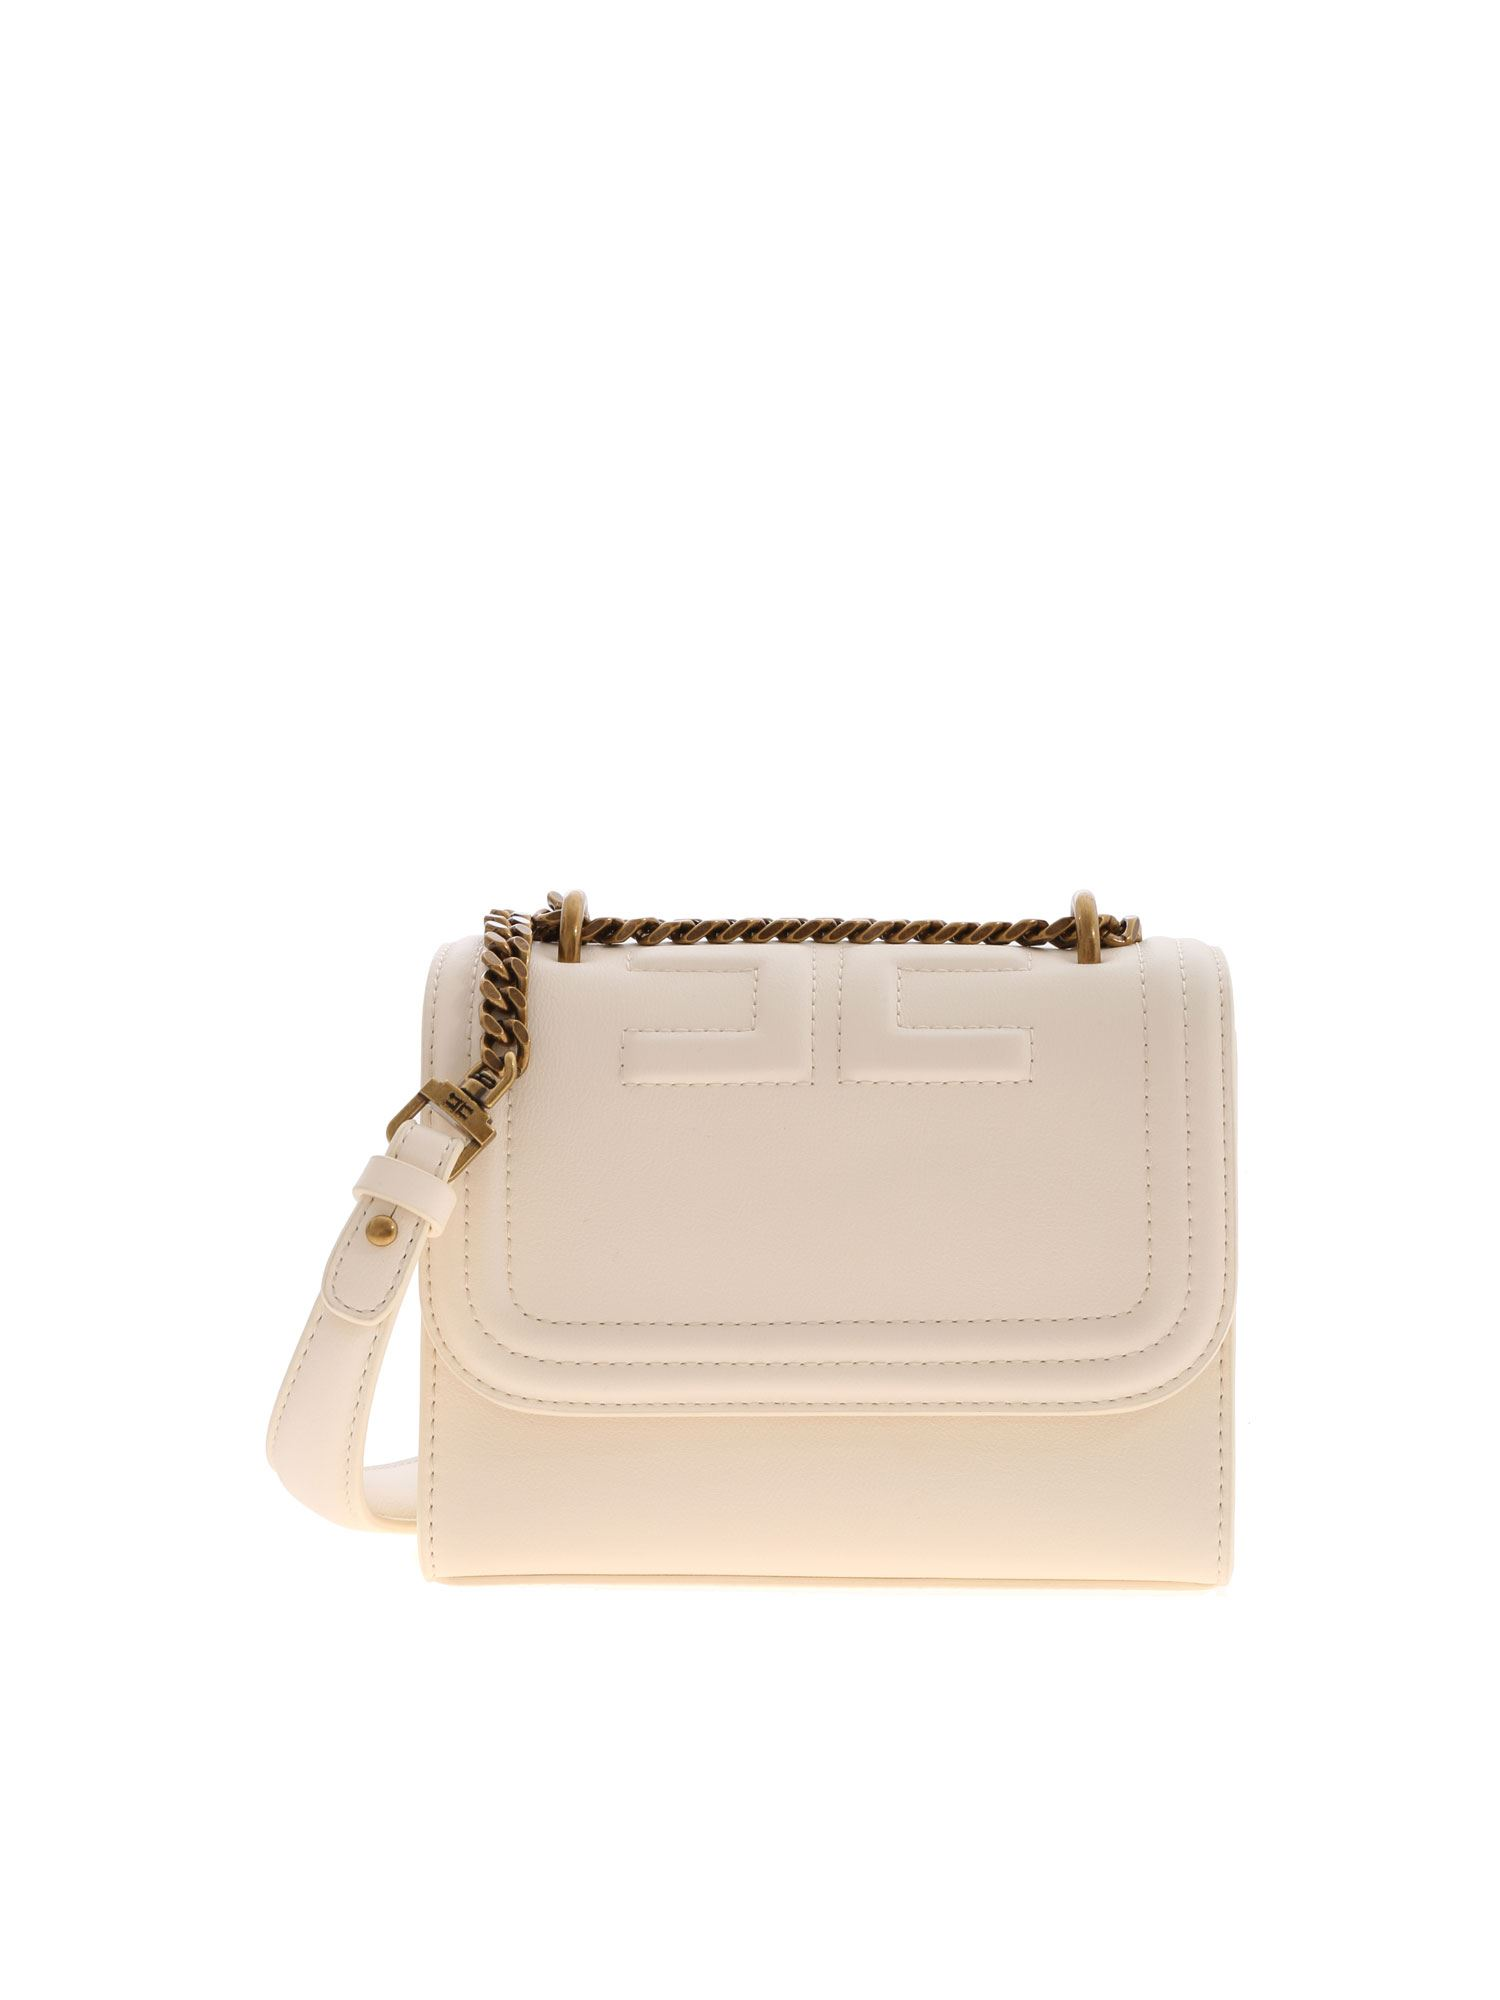 Elisabetta Franchi Leathers LOGO SHOULDER BAG IN IVORY COLOR